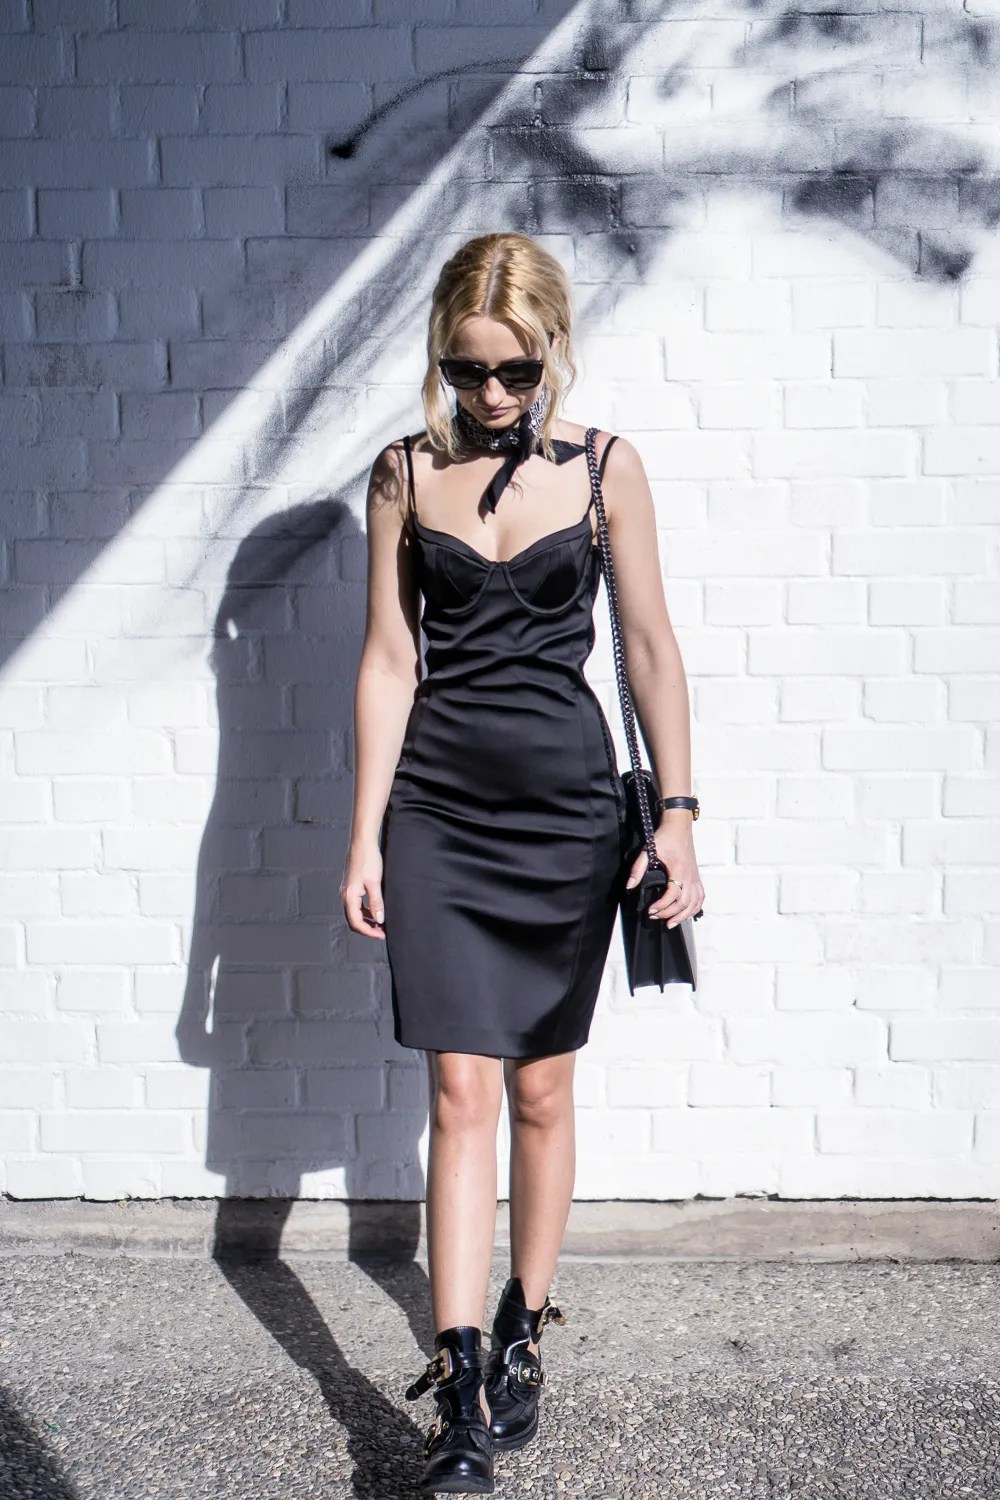 black dress hm balenciaga boots blonde bloger street style ootd fashion outfit tumblr girl casual